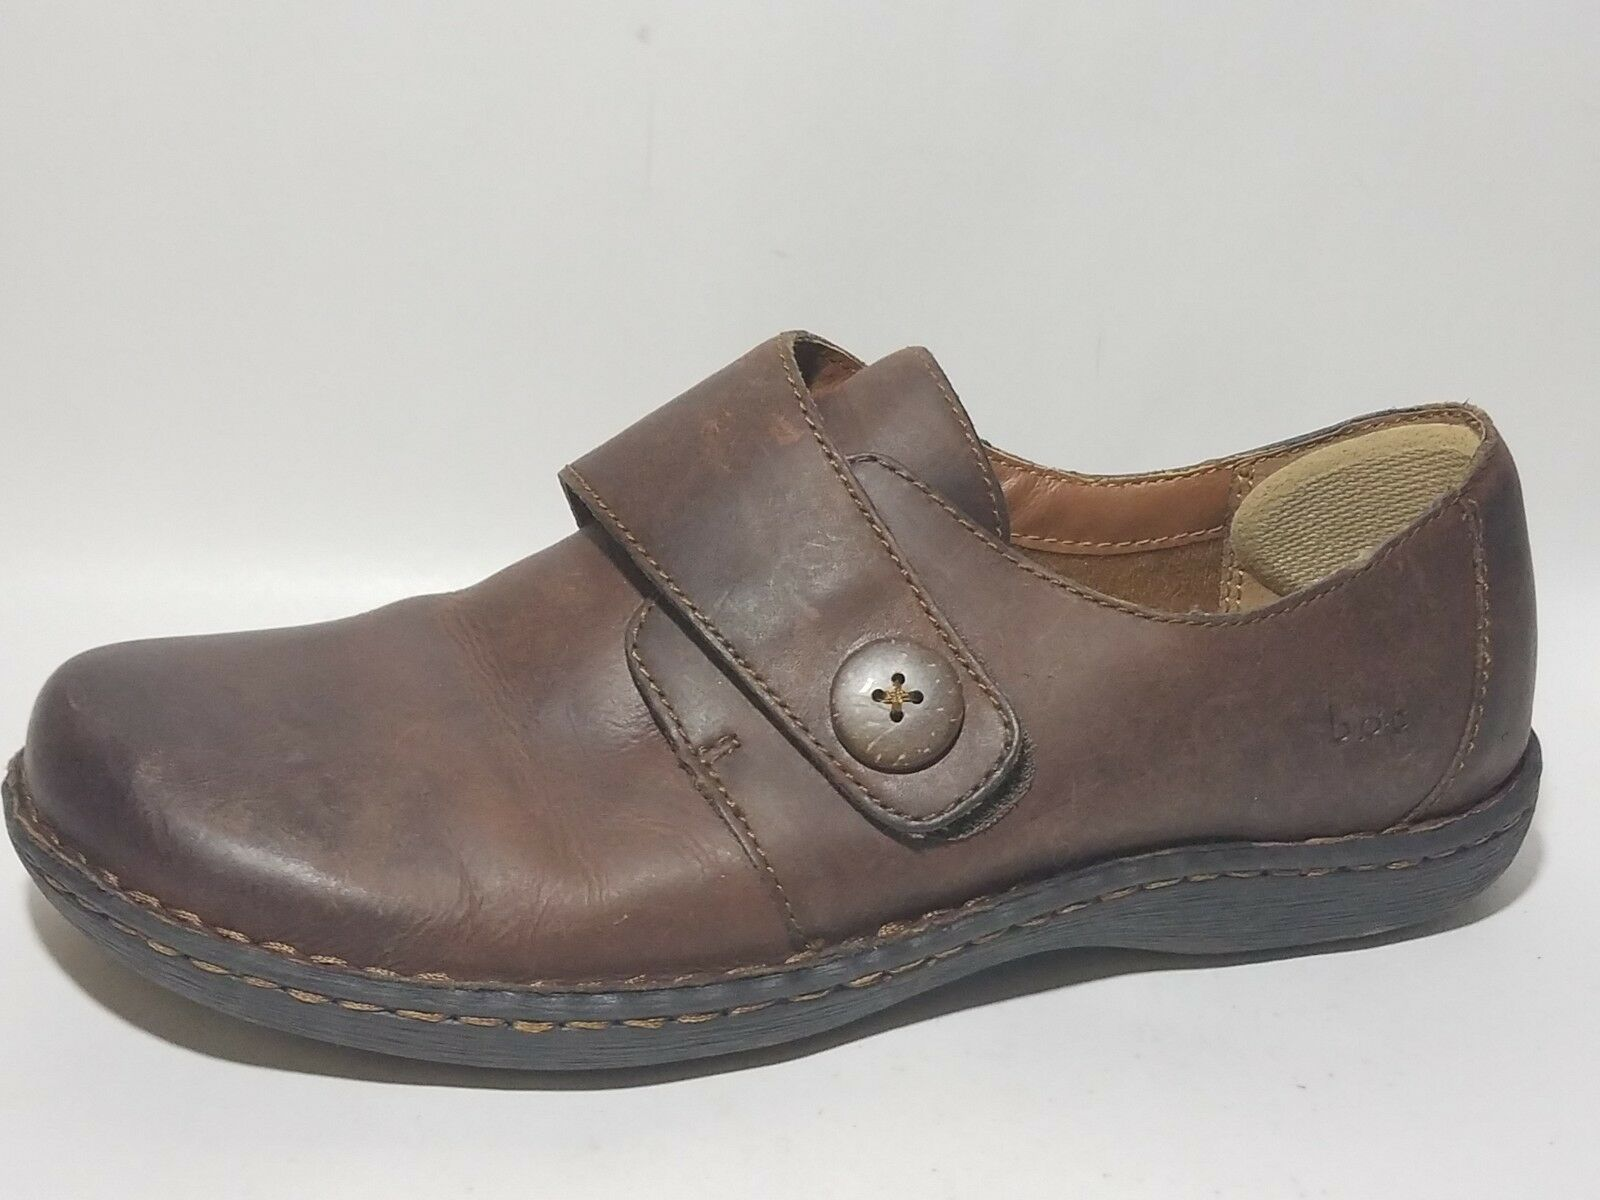 BOC BORN Womens 9.5 M EU 41 Brown Loafers Clogs Casual Work shoes Leather Career